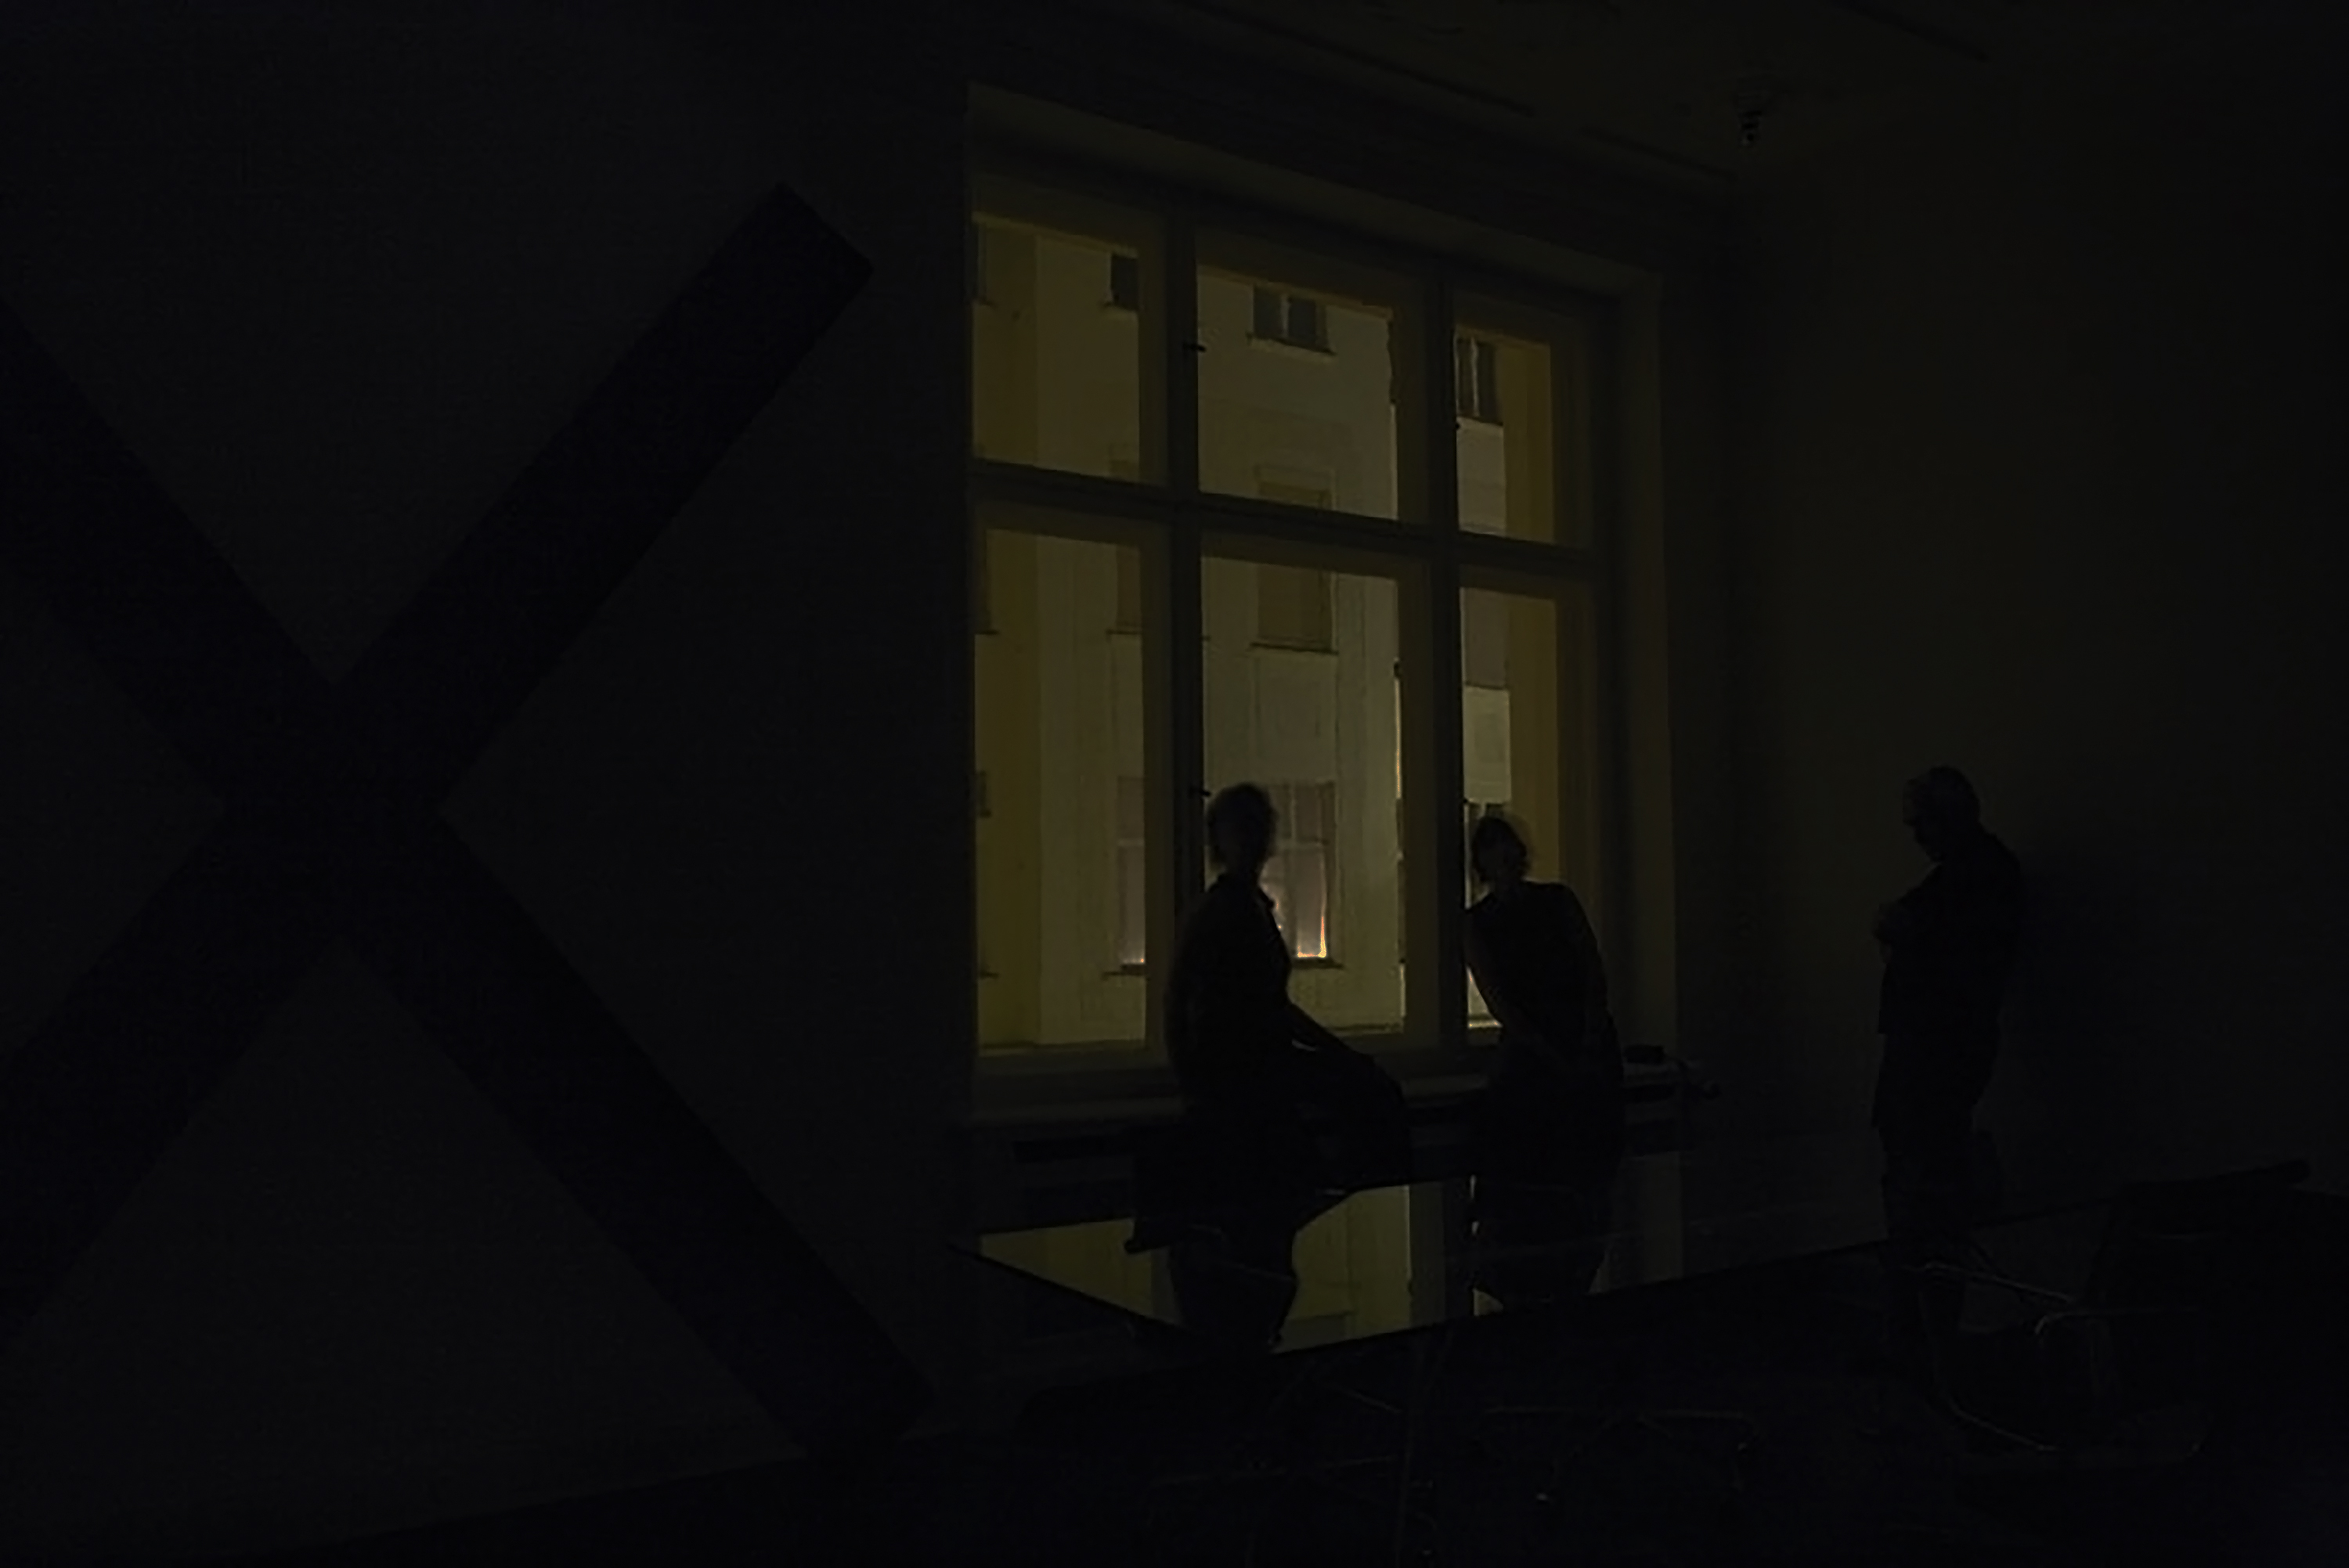 Martin Creed, Work No. 270: The lights off (2001)